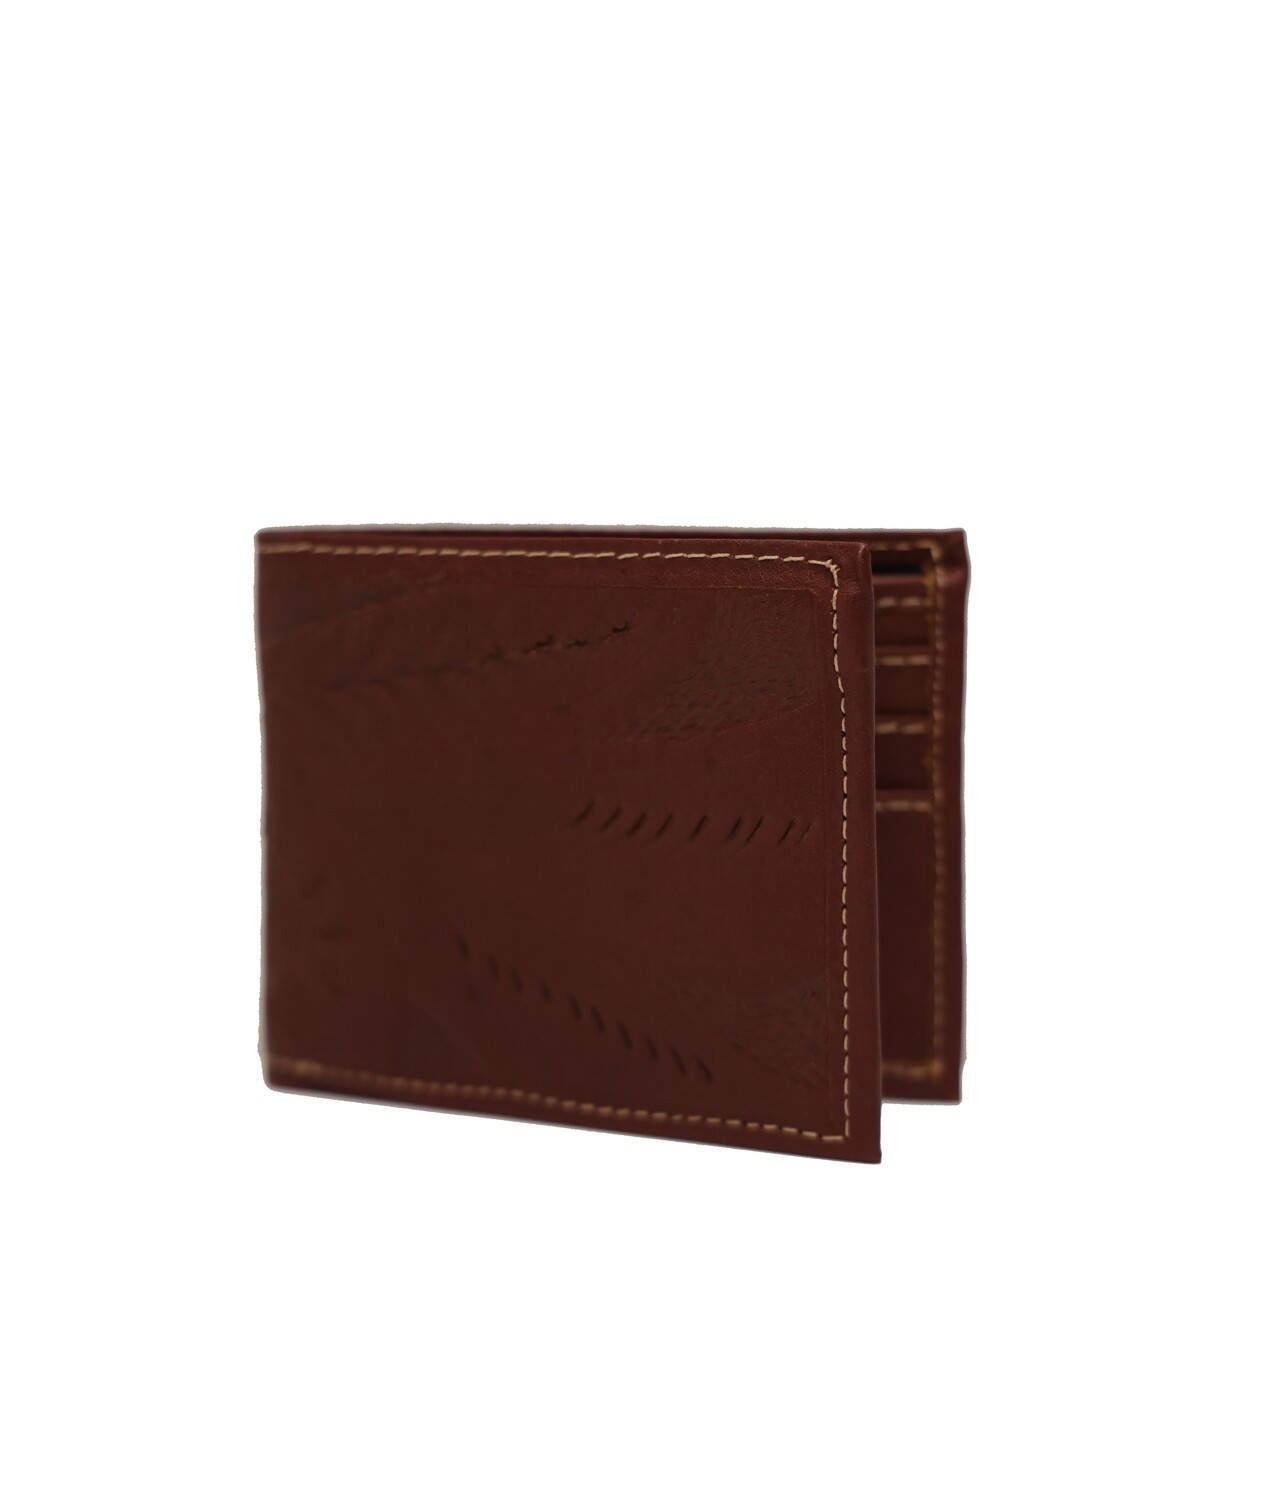 Paraguay Tooled Leather Bifold Wallet